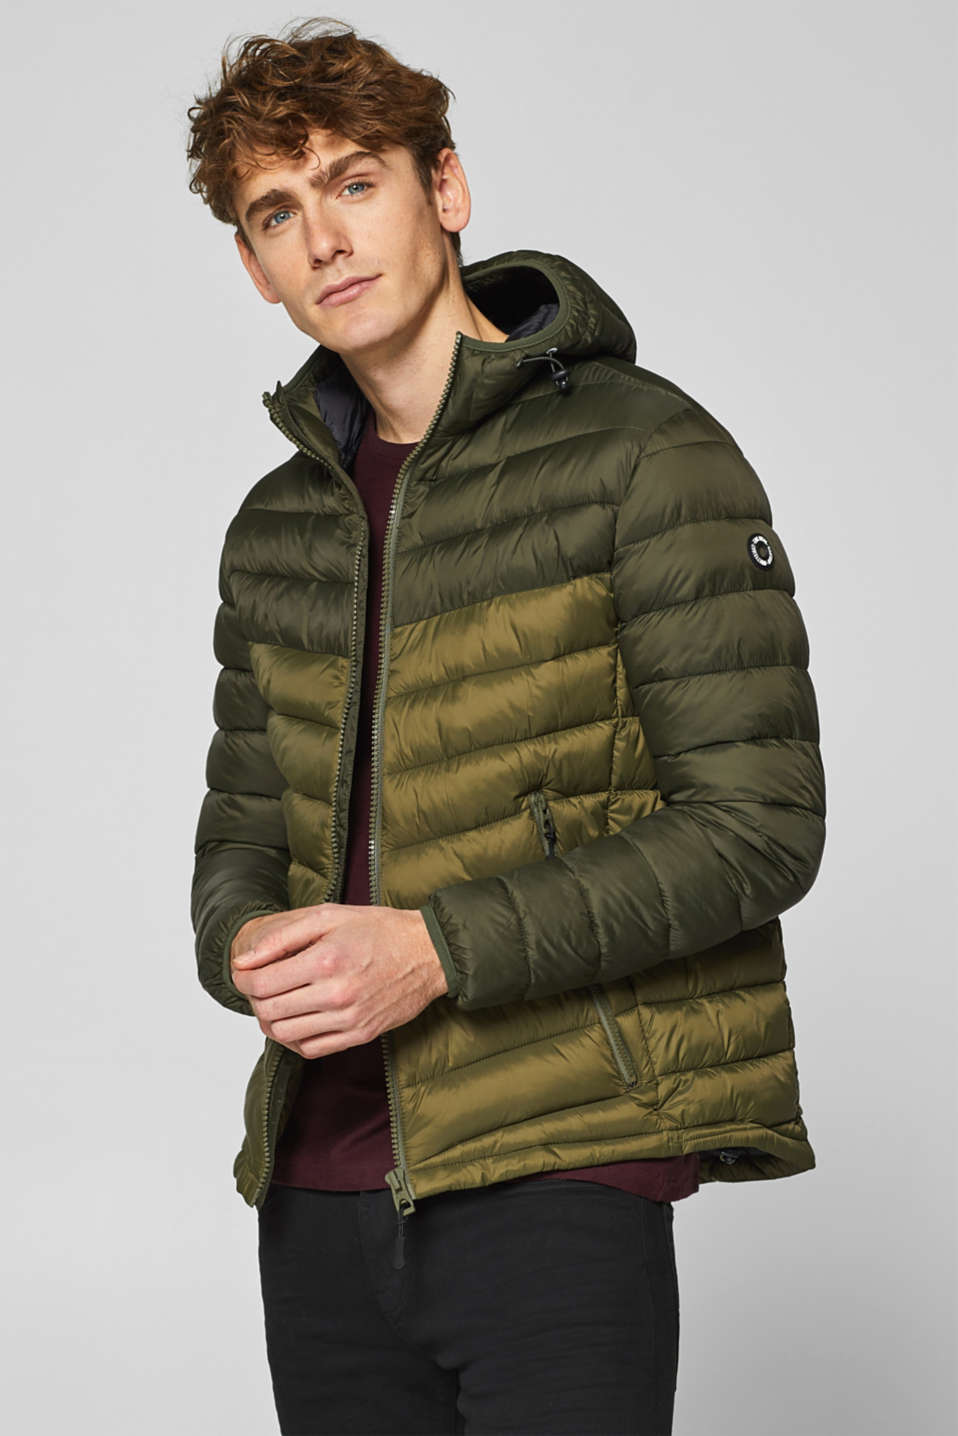 edc - Quilted jacket with a hood, made of nylon